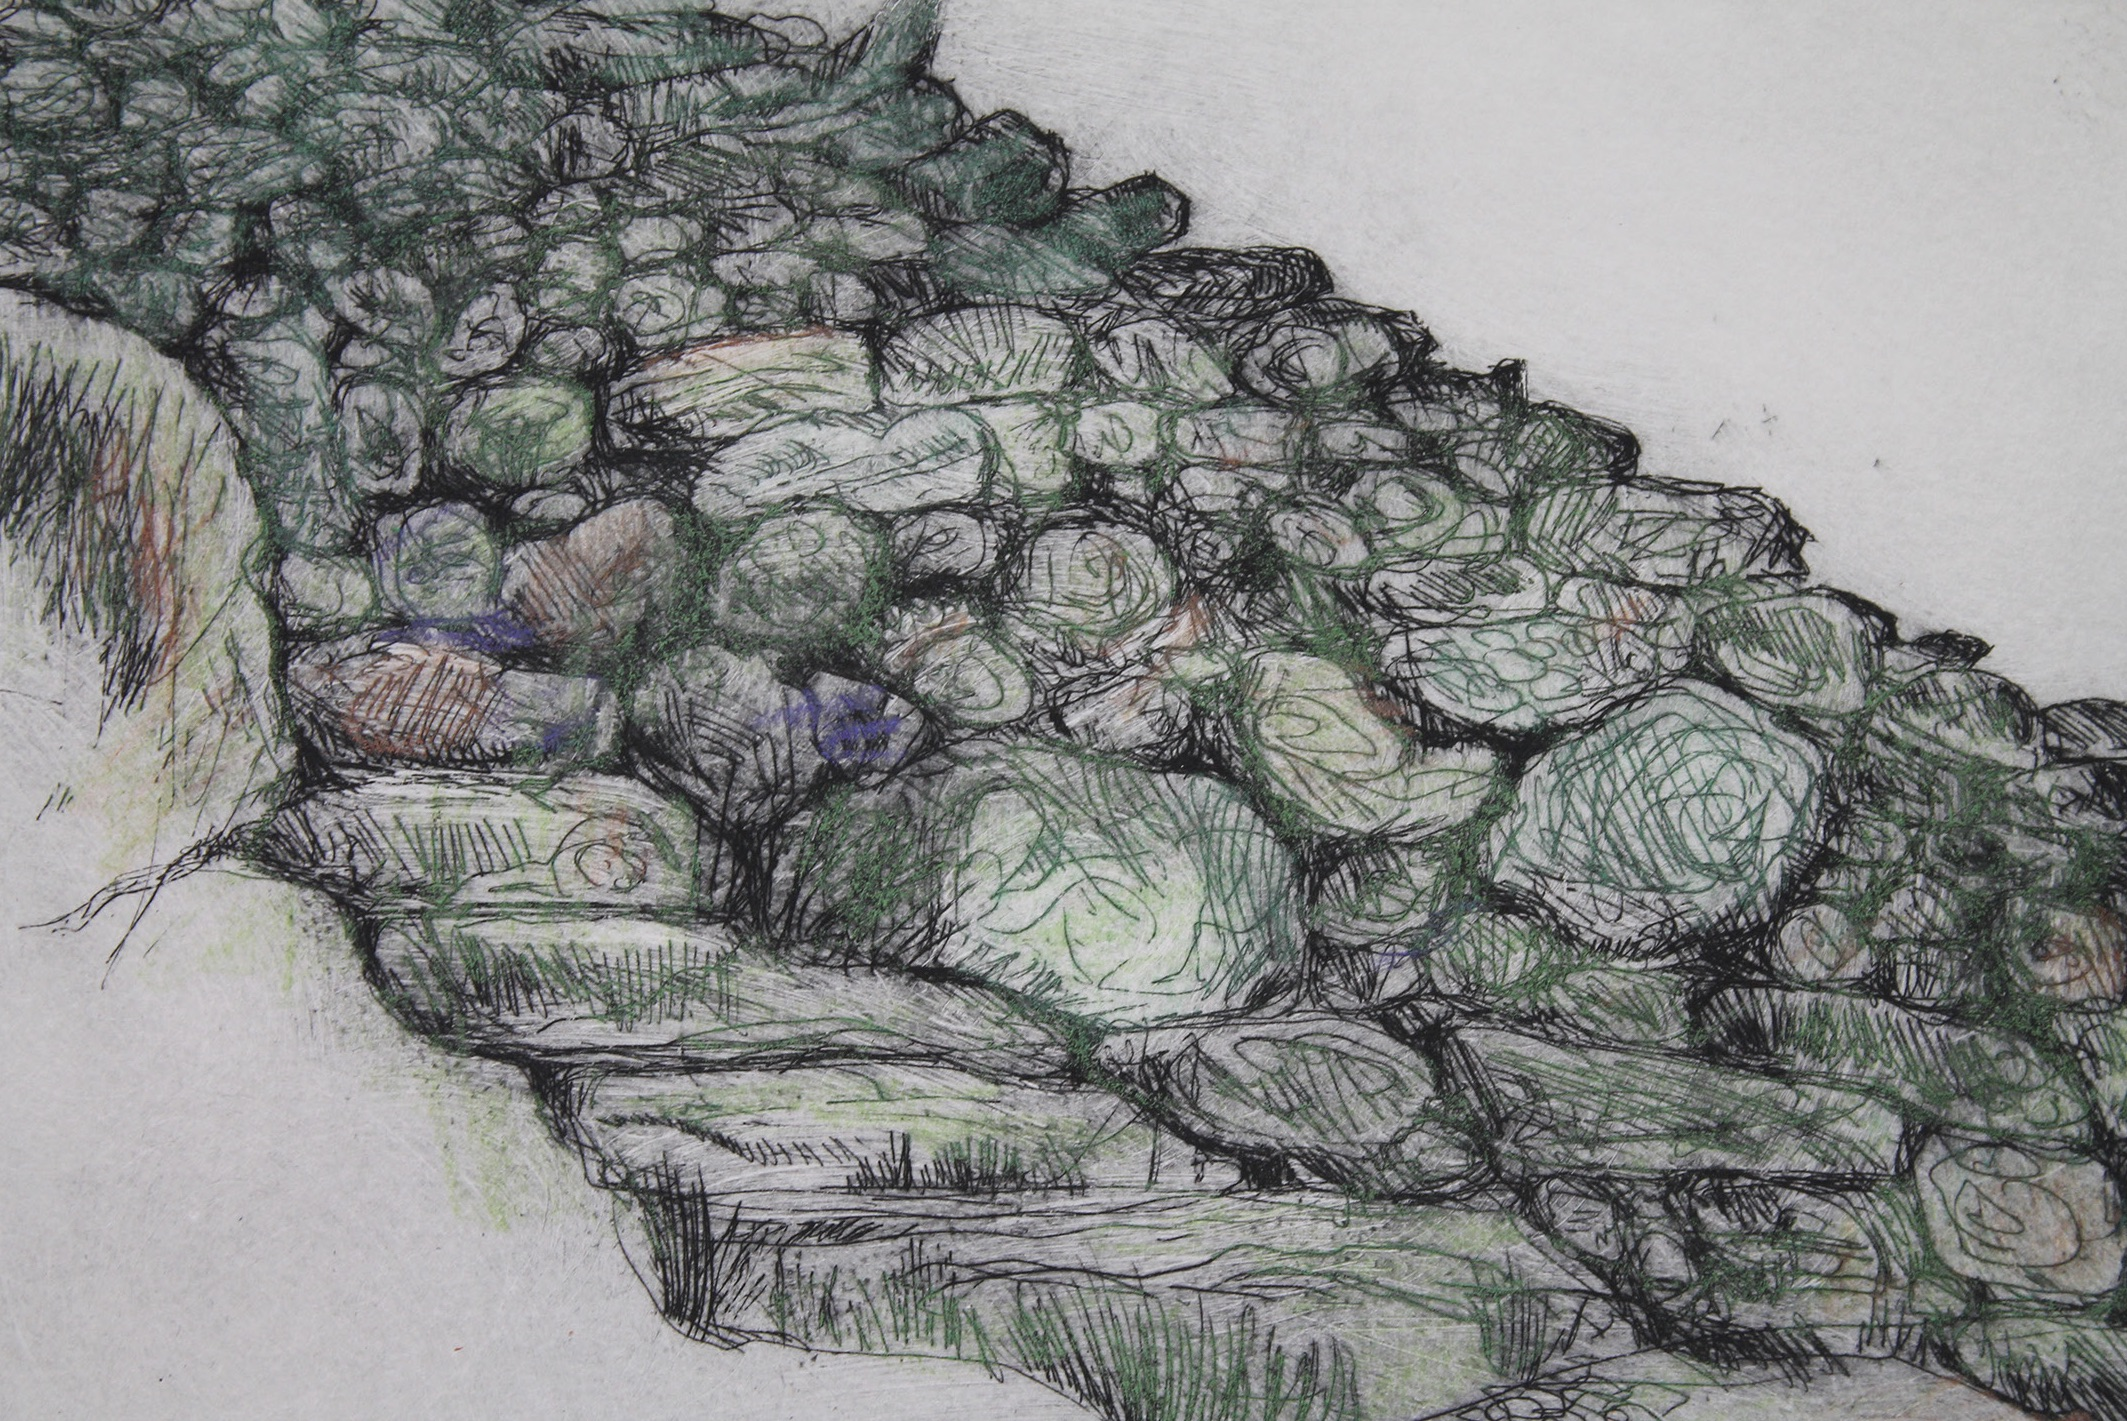 Stuart Evans - Cadair Idris, dry stone wall (2016), etching and hand colouring